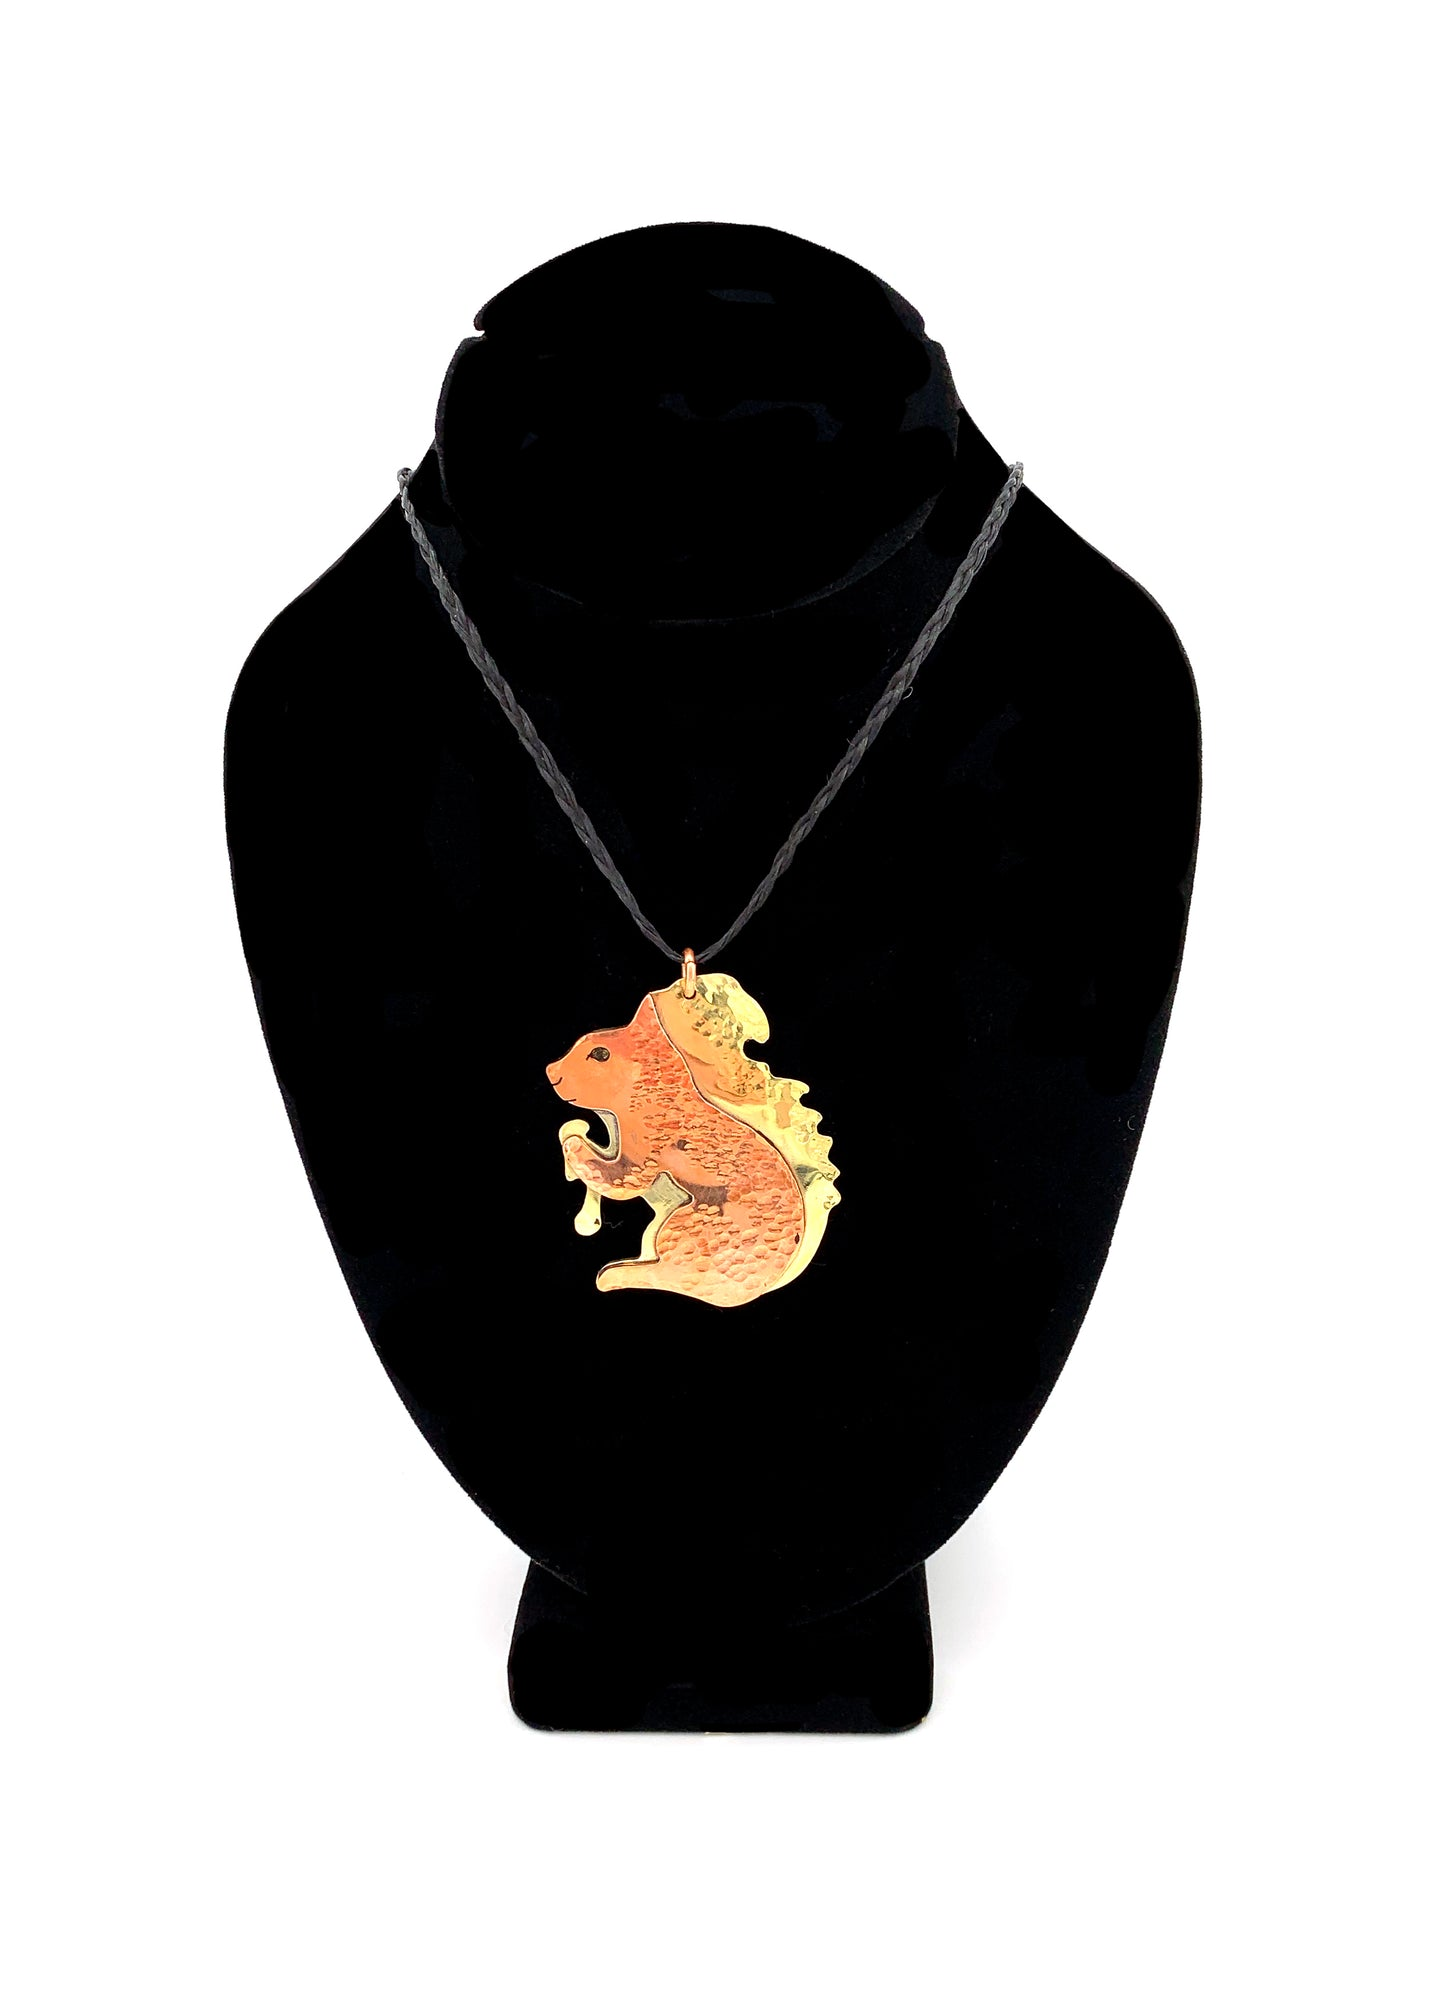 Benny the Squirrel Necklace by Dennis Shorty